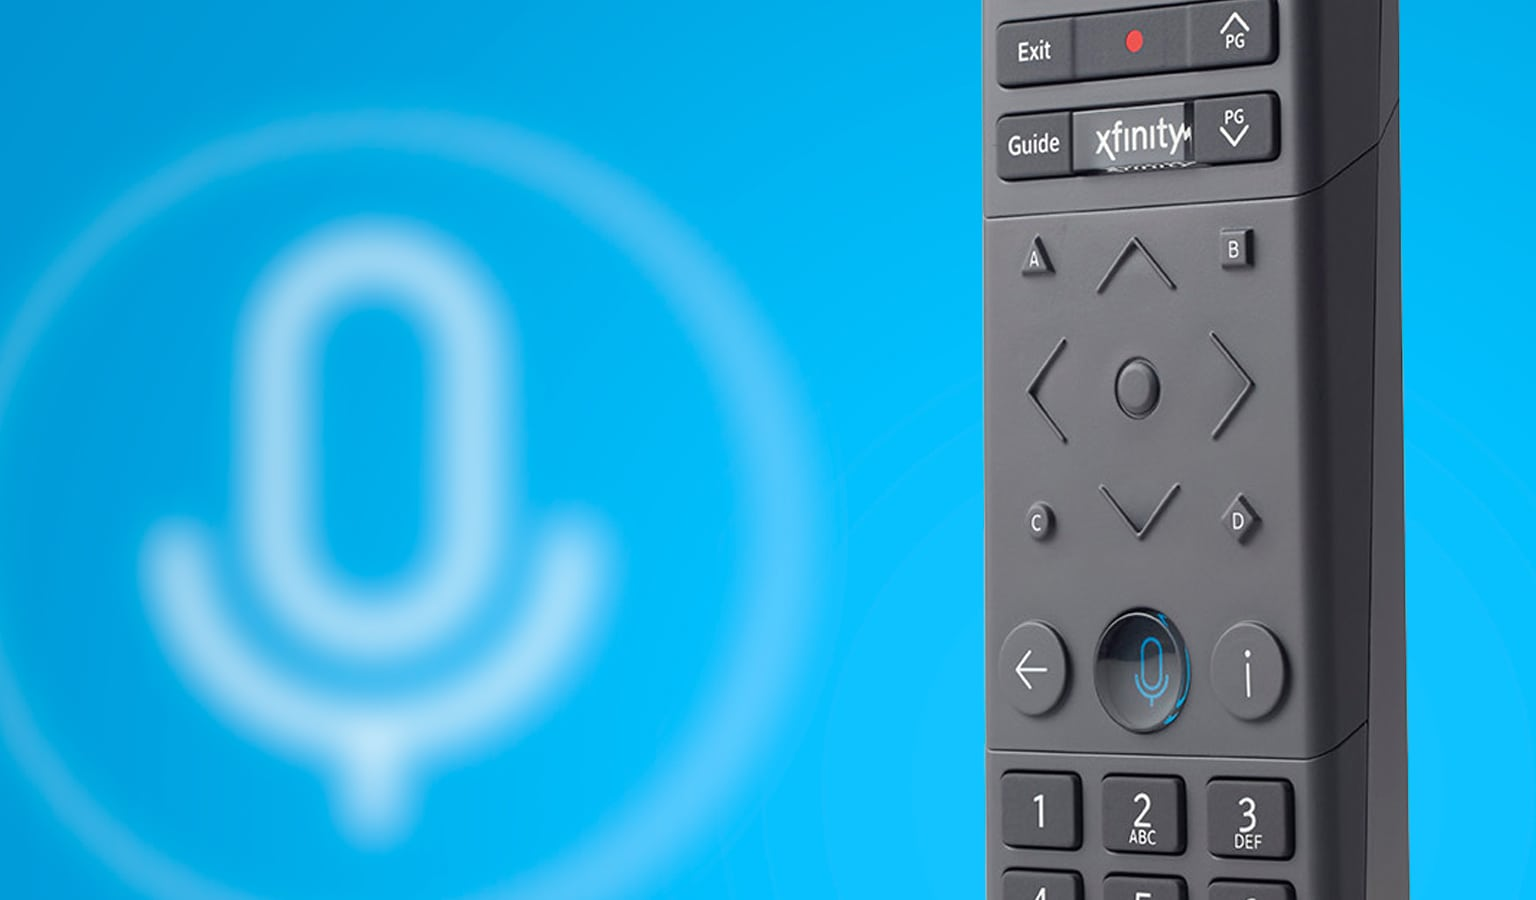 Comcast Showcases Redesigned X1 Voice Remote